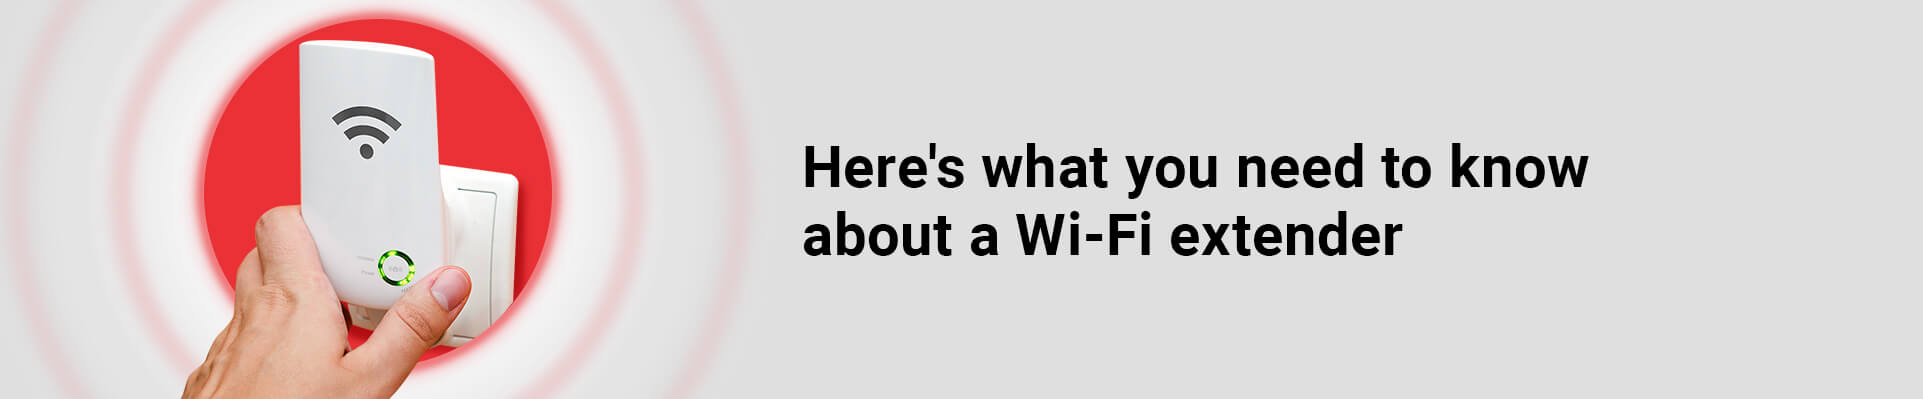 What Do I Need to Know About Wi-Fi Extenders?